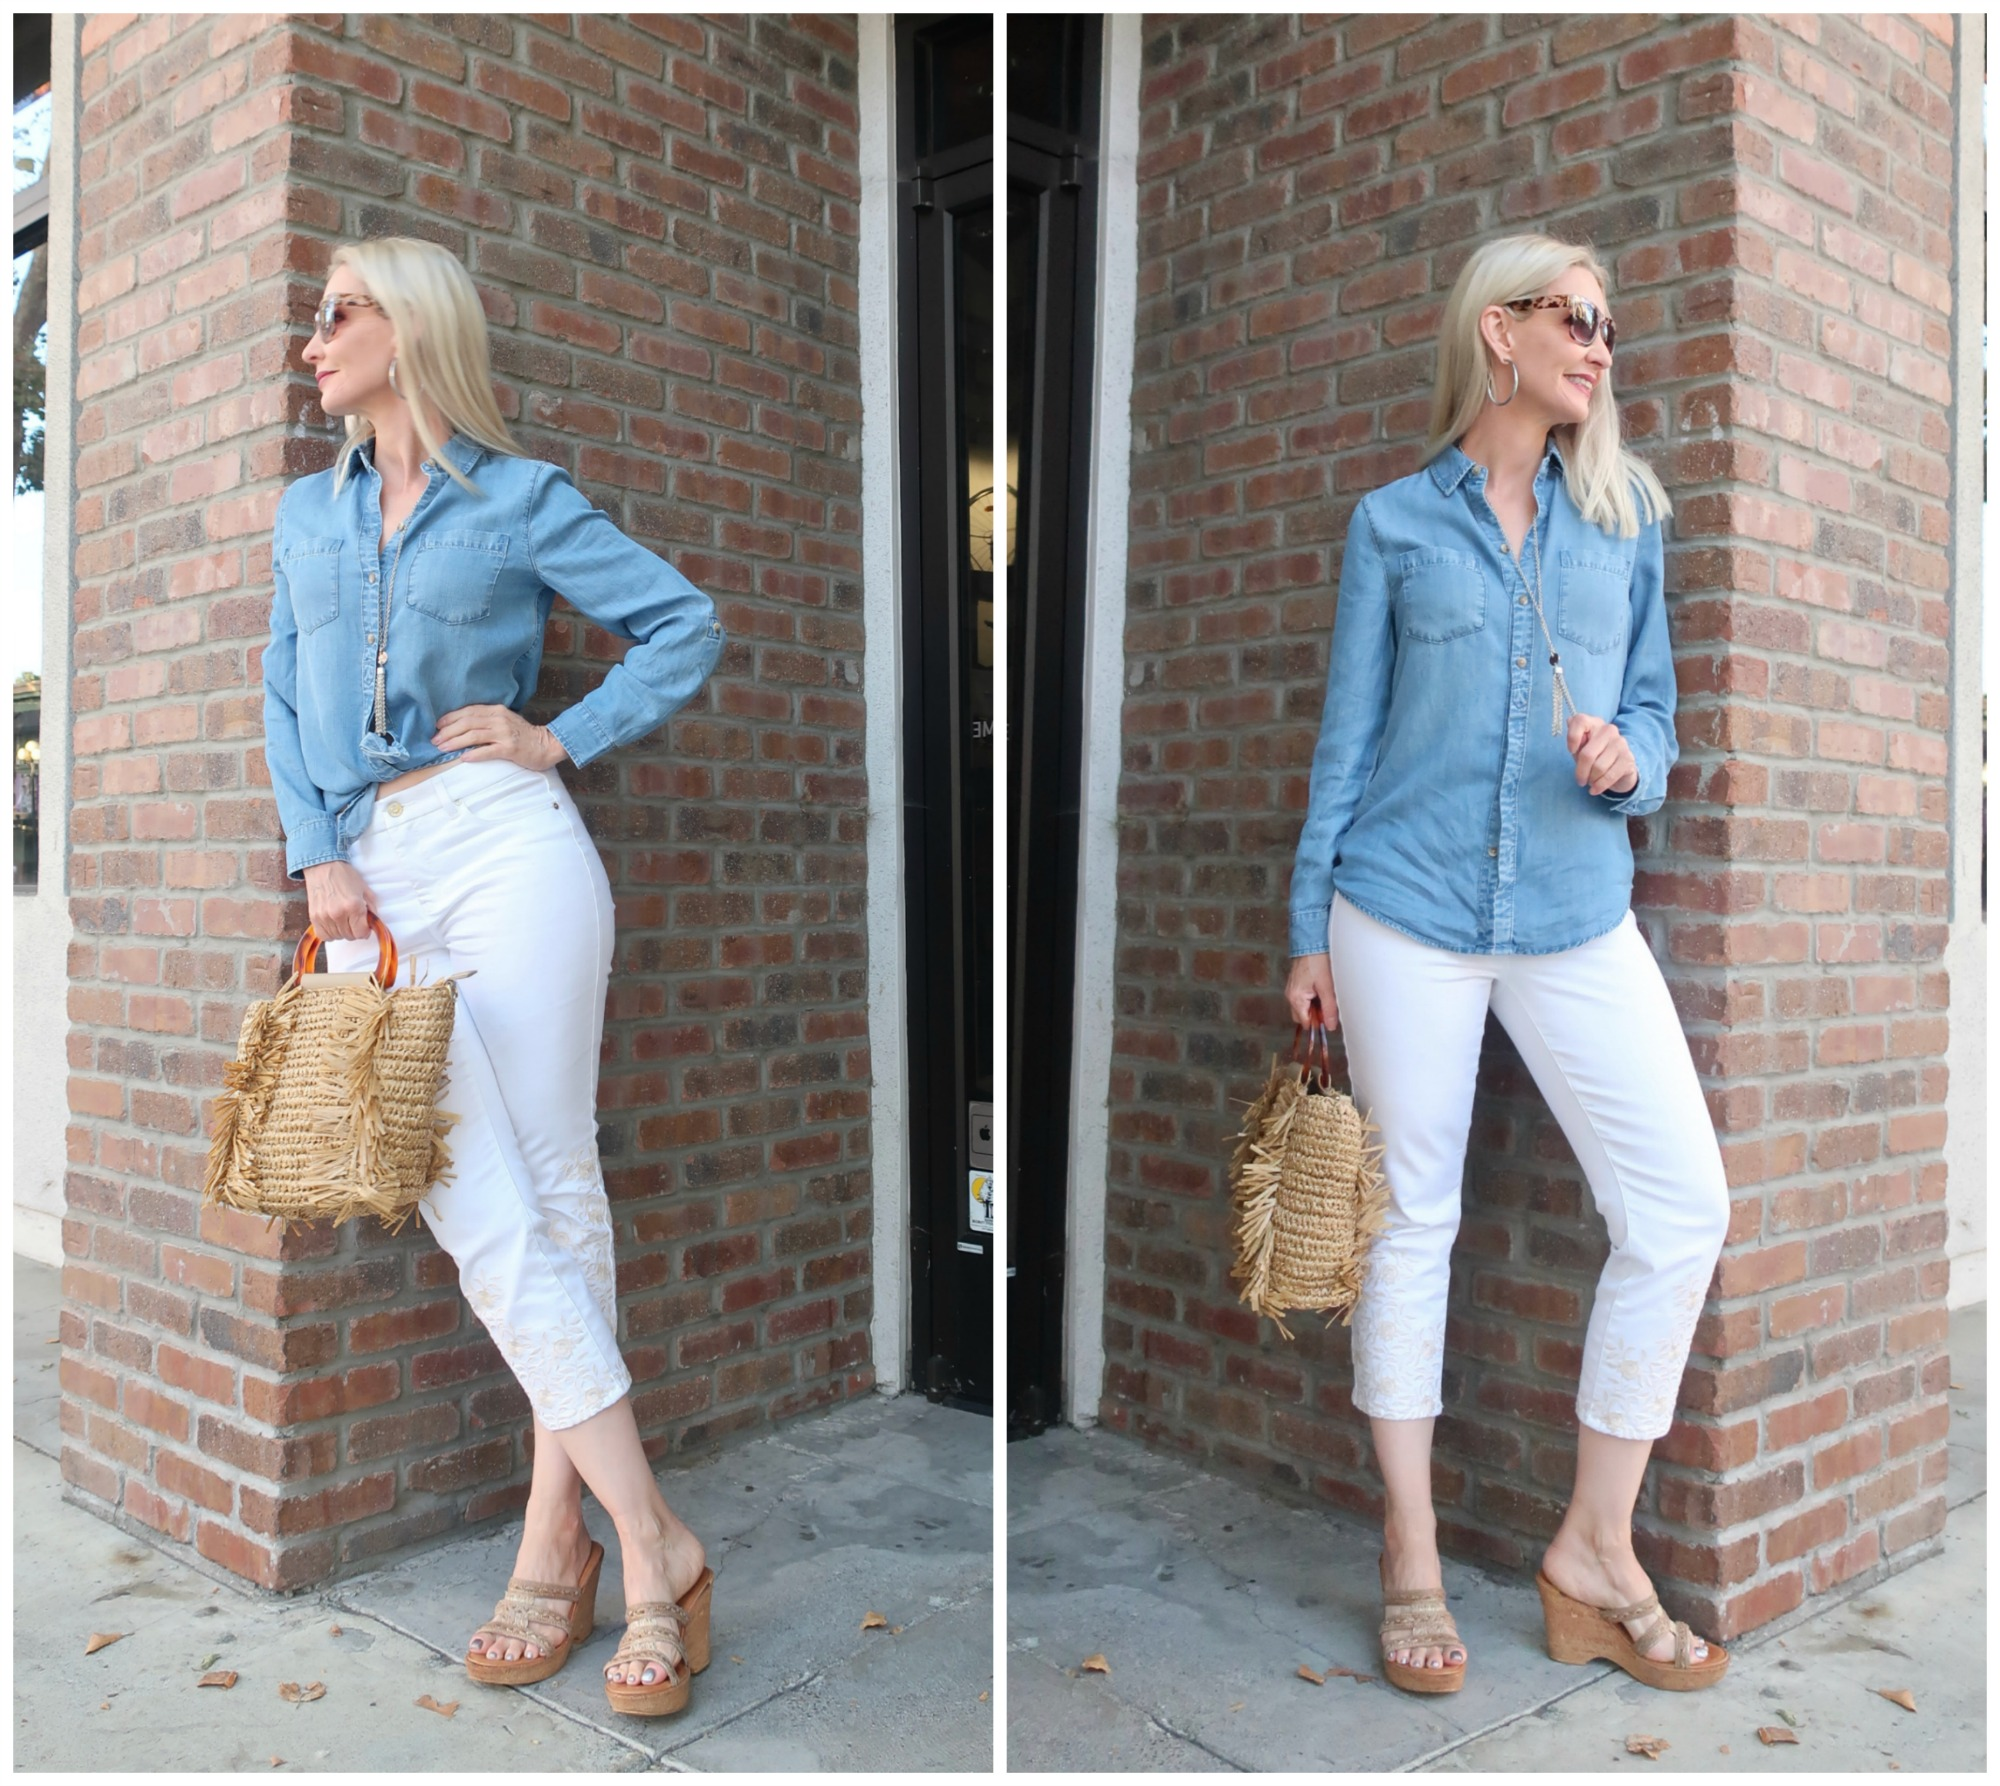 denim shirt and white pants for travel